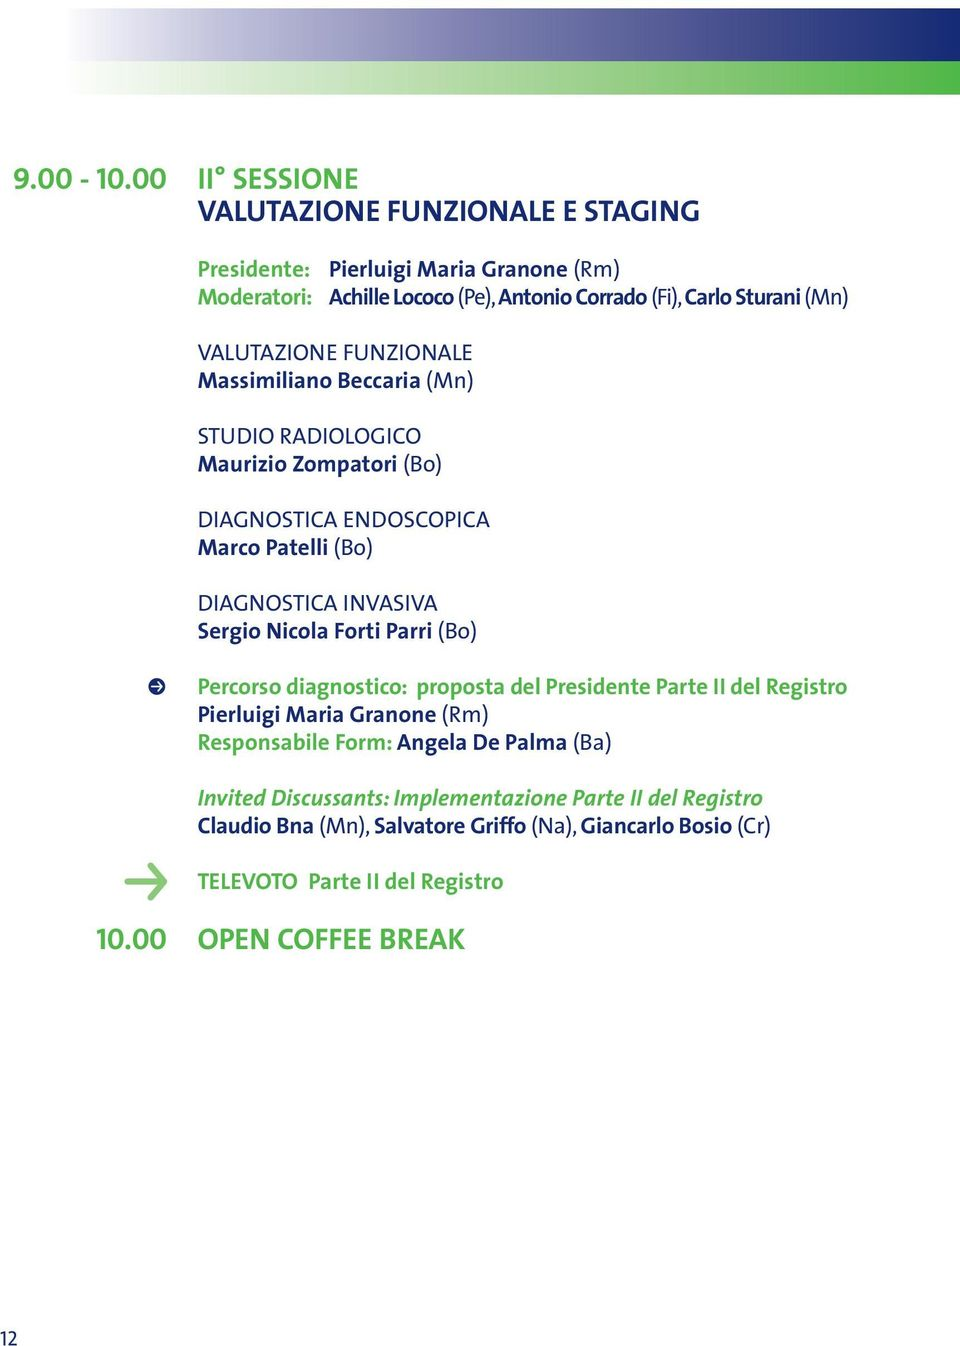 VALUTAZIONE FUNZIONALE Massimiliano Beccaria (Mn) STUDIO RADIOLOGICO Maurizio Zompatori (Bo) DIAGNOSTICA ENDOSCOPICA Marco Patelli (Bo) DIAGNOSTICA INVASIVA Sergio